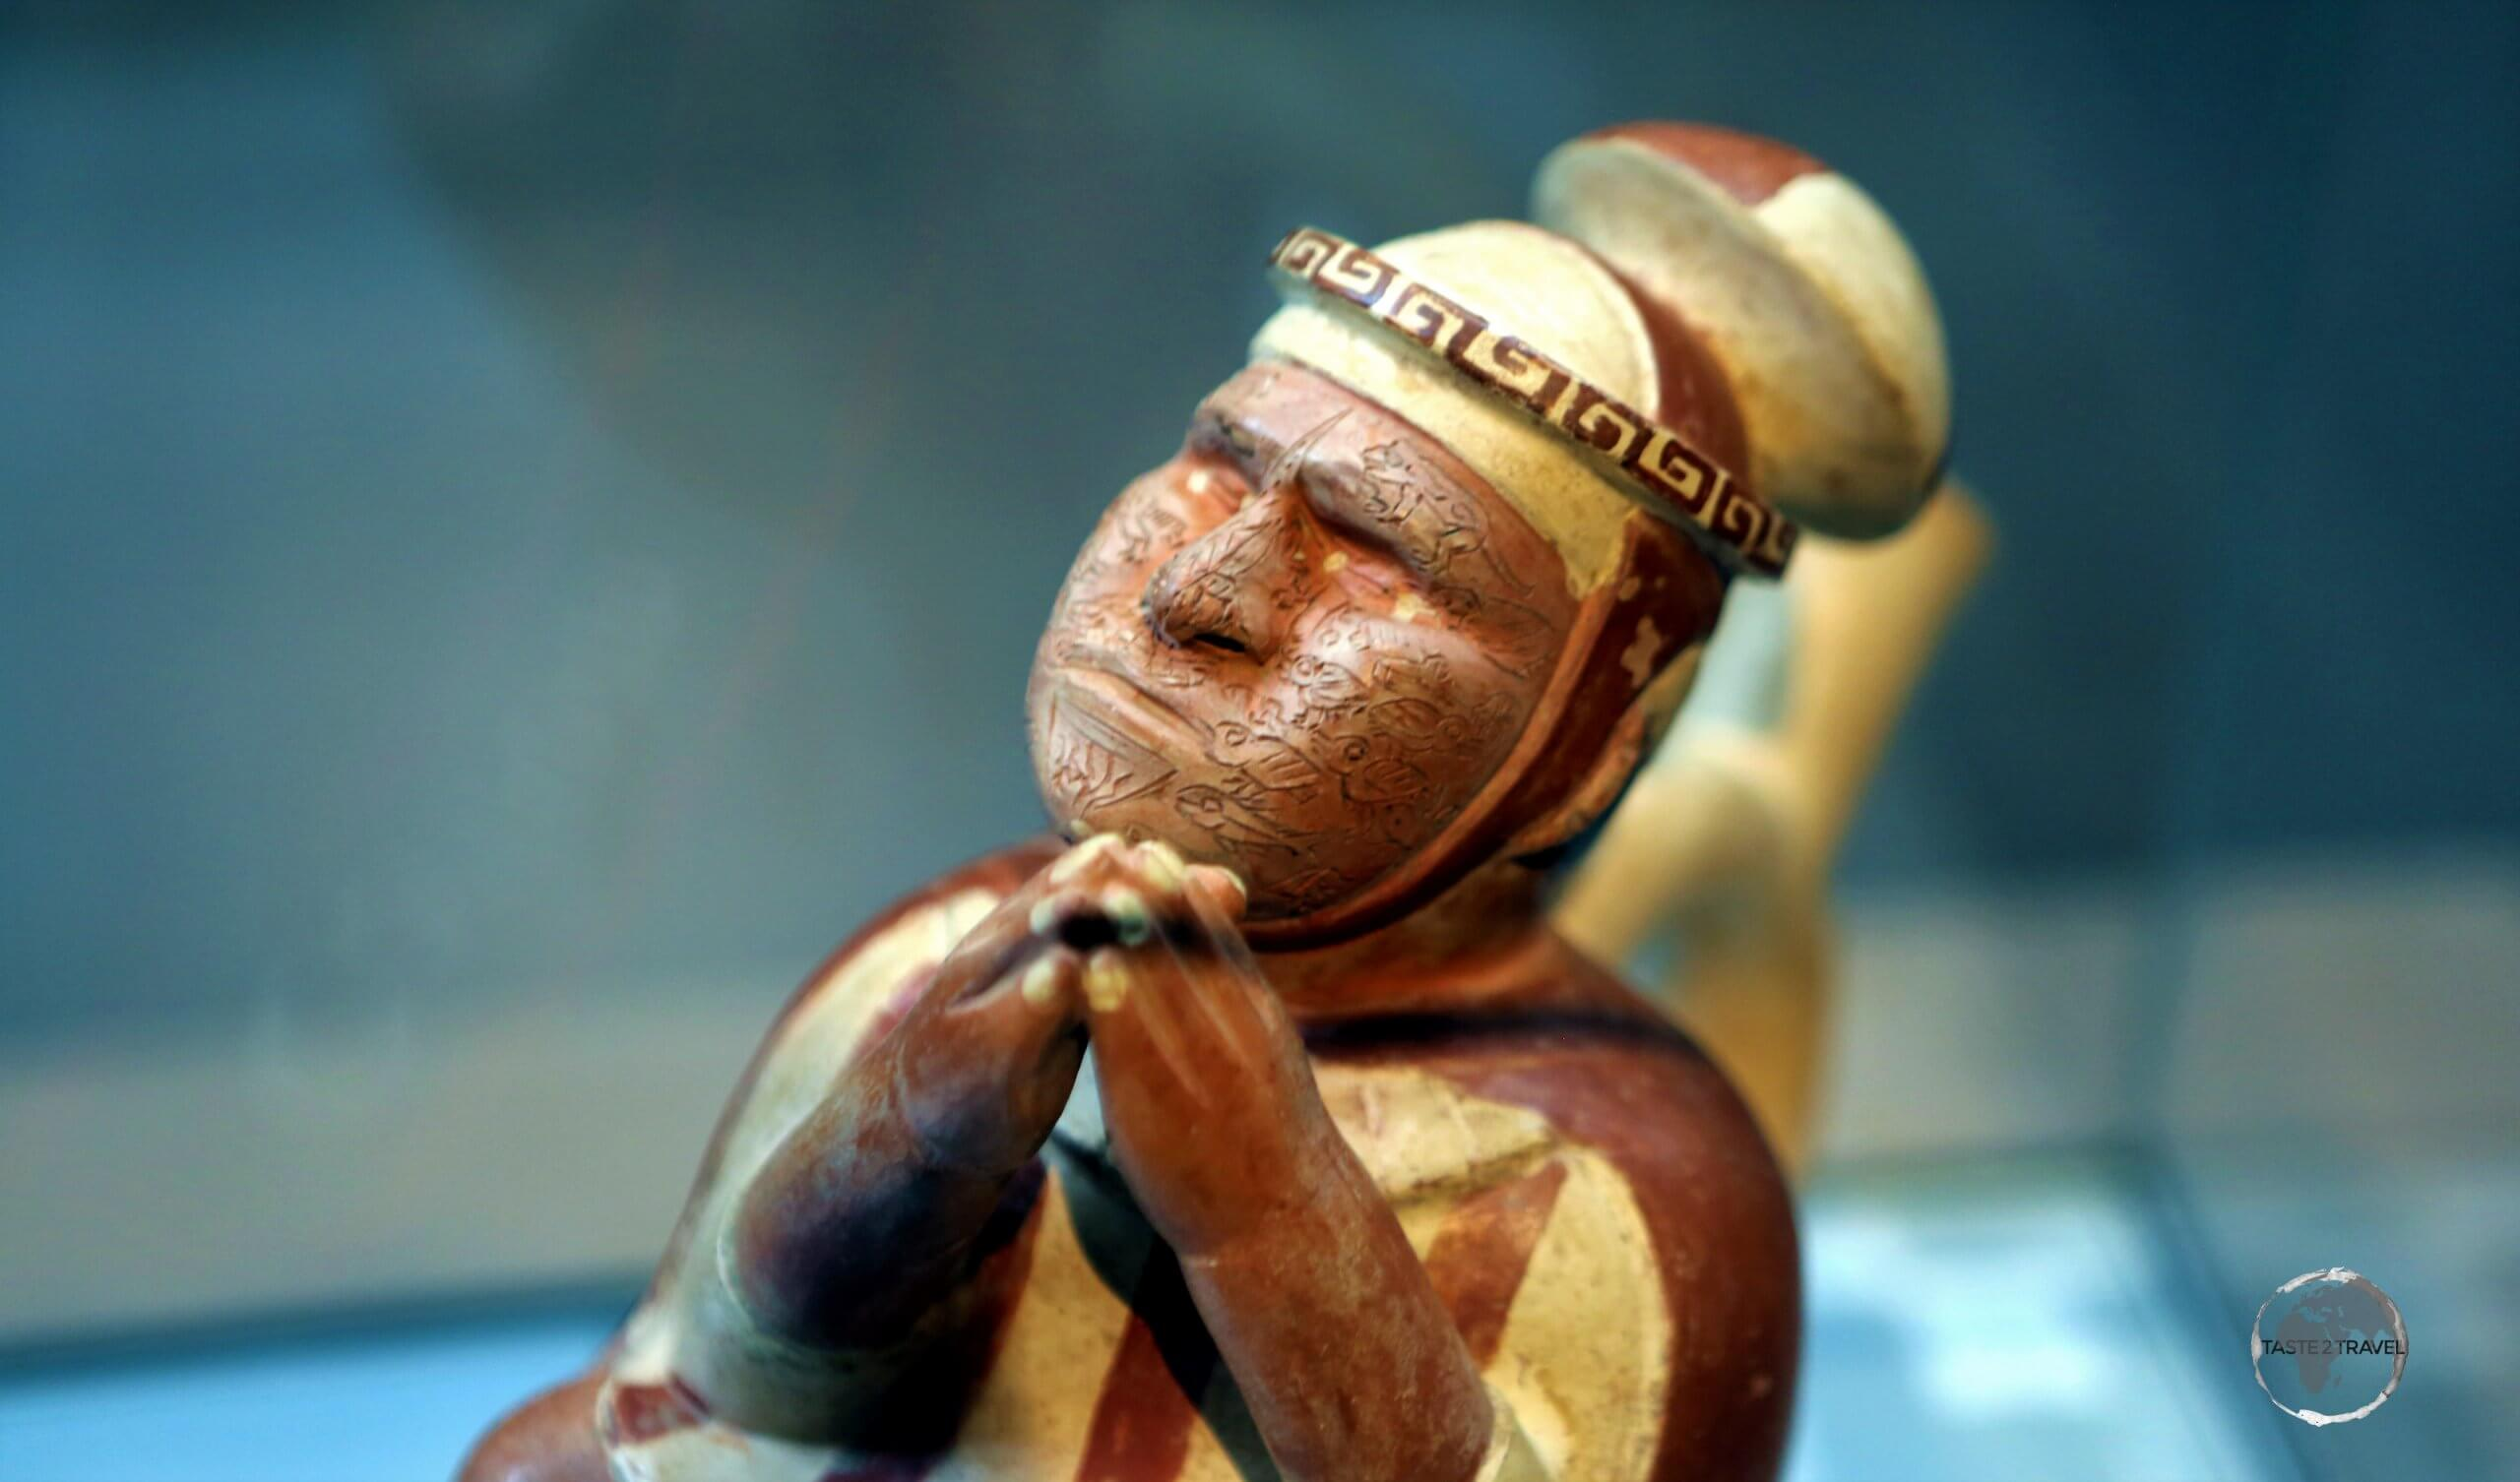 The 'Huacas de Moche' museum, which is adjacent to the Huaca de la Luna in Trujillo, features relics uncovered at the temple, including Moche ceramic figurines.